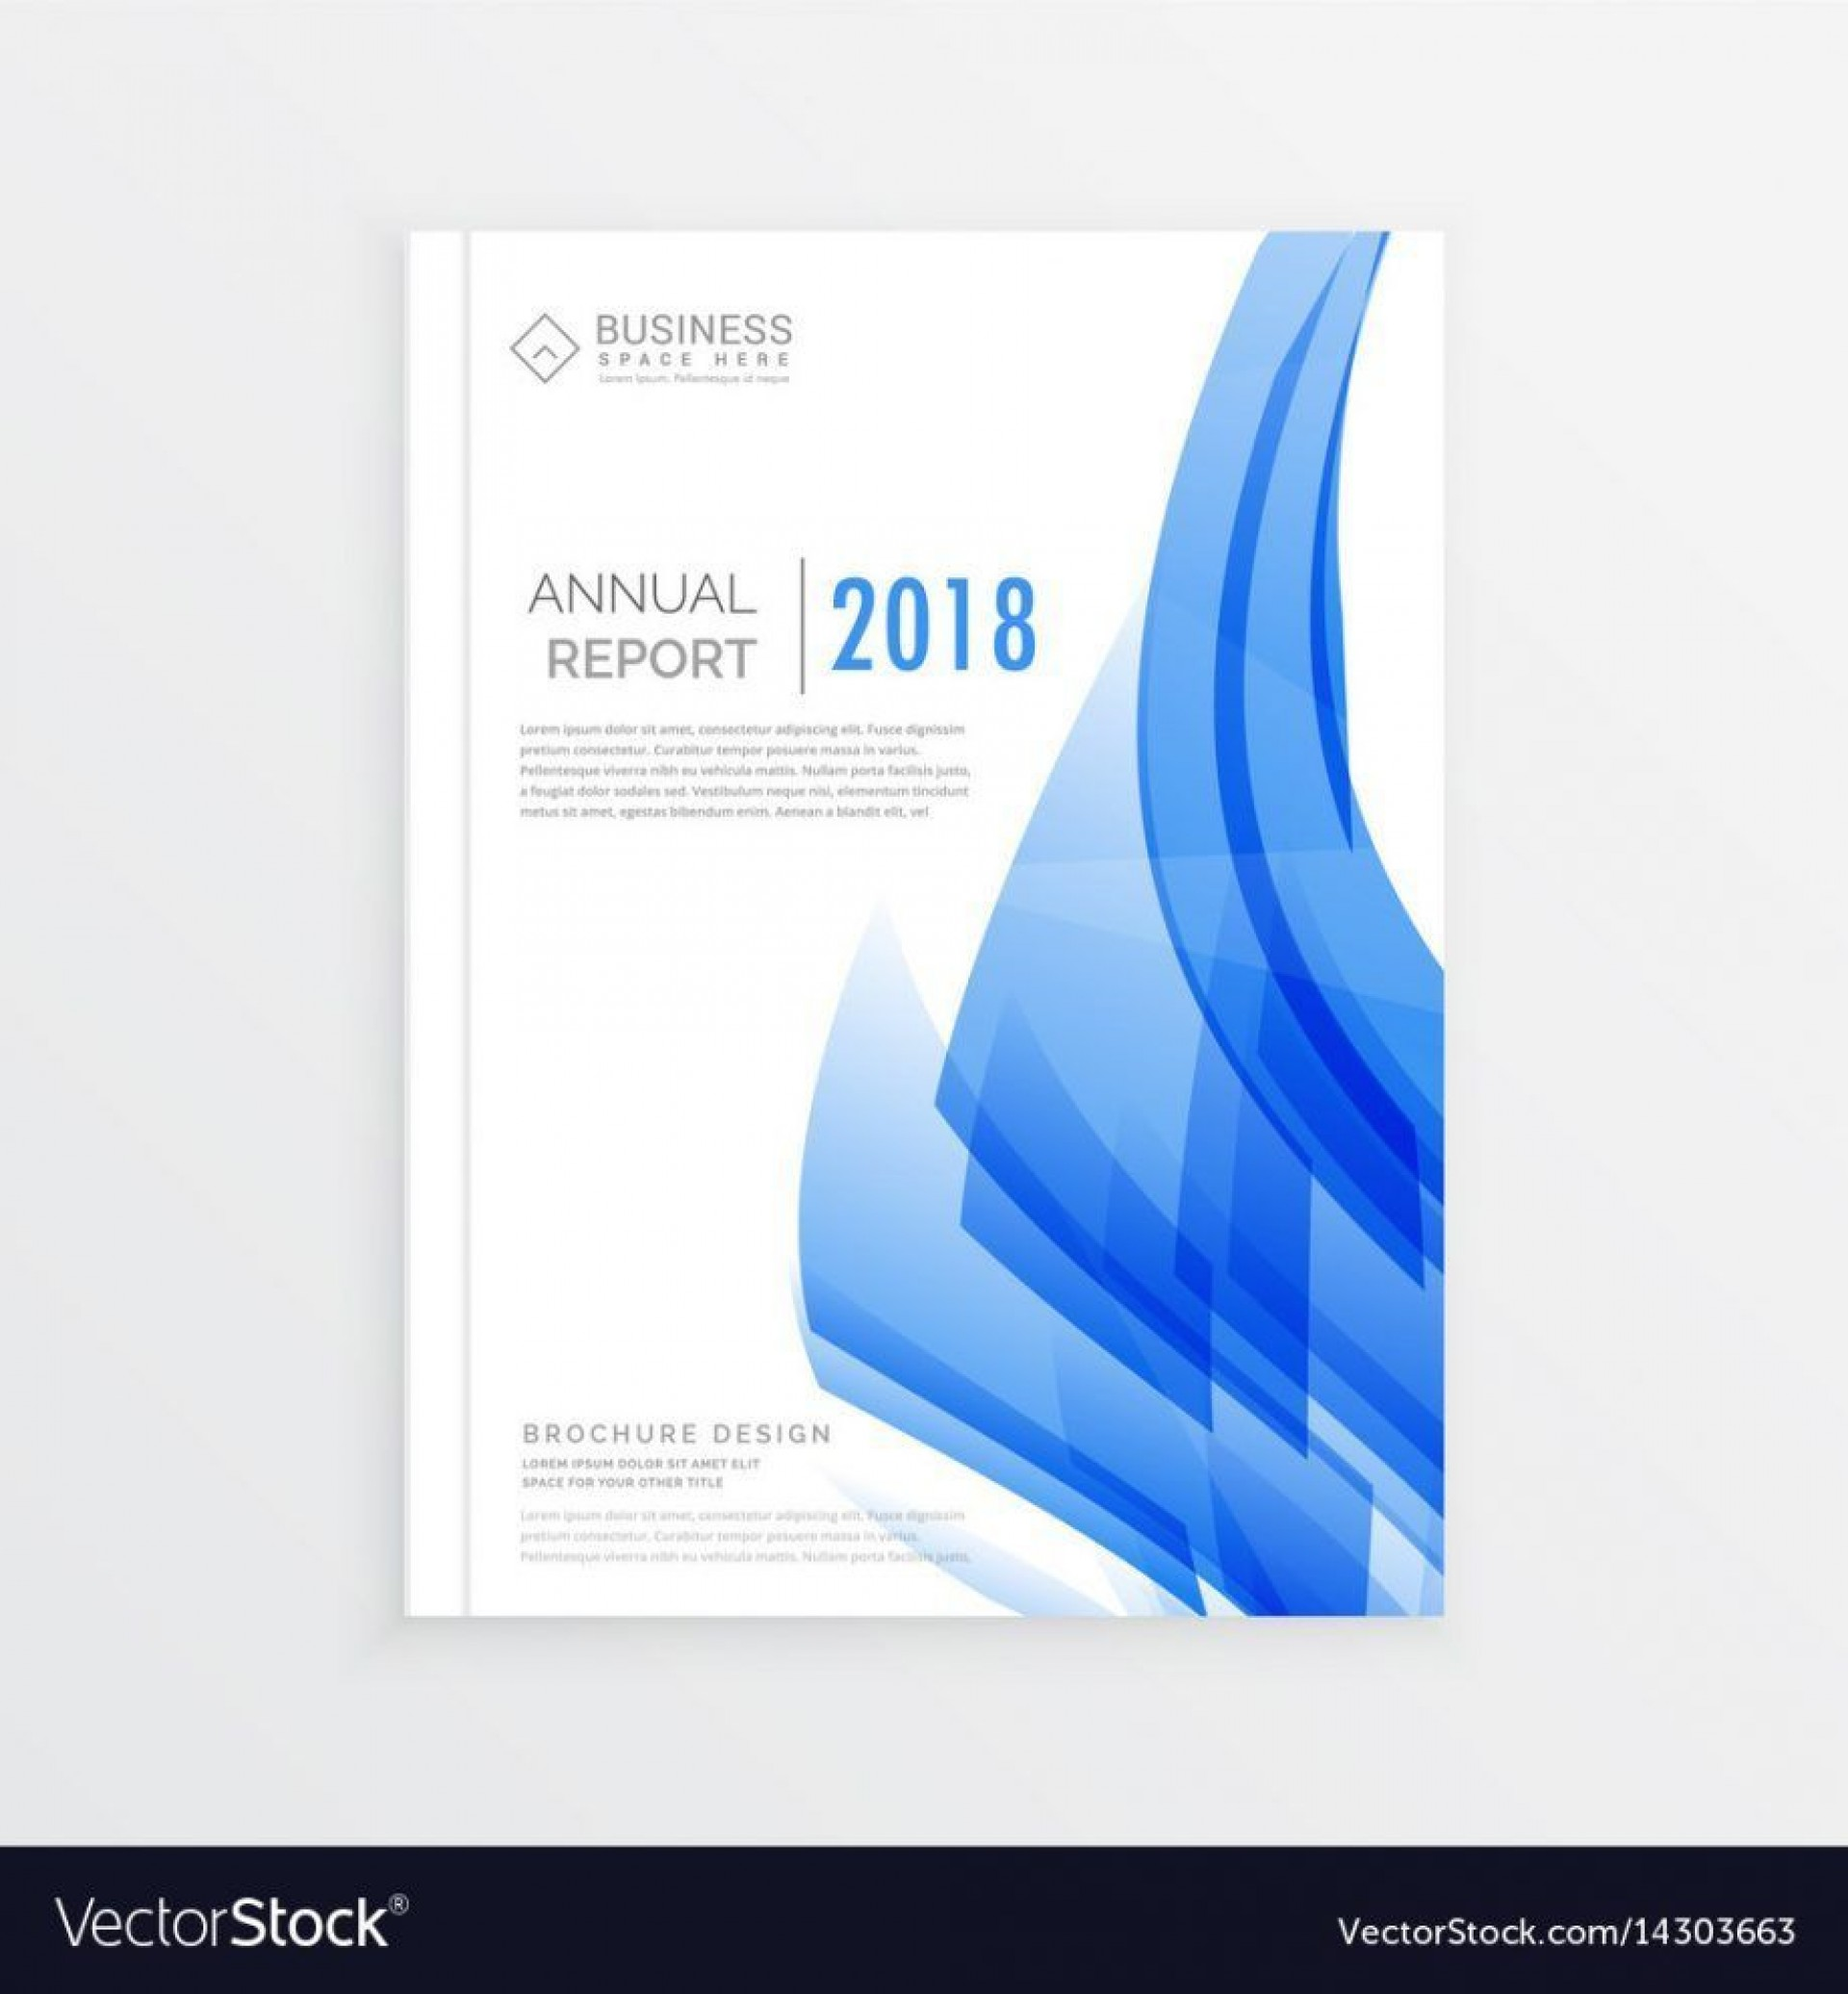 002 Surprising Free Download Annual Report Cover Design Template Photo  Page In Word1920